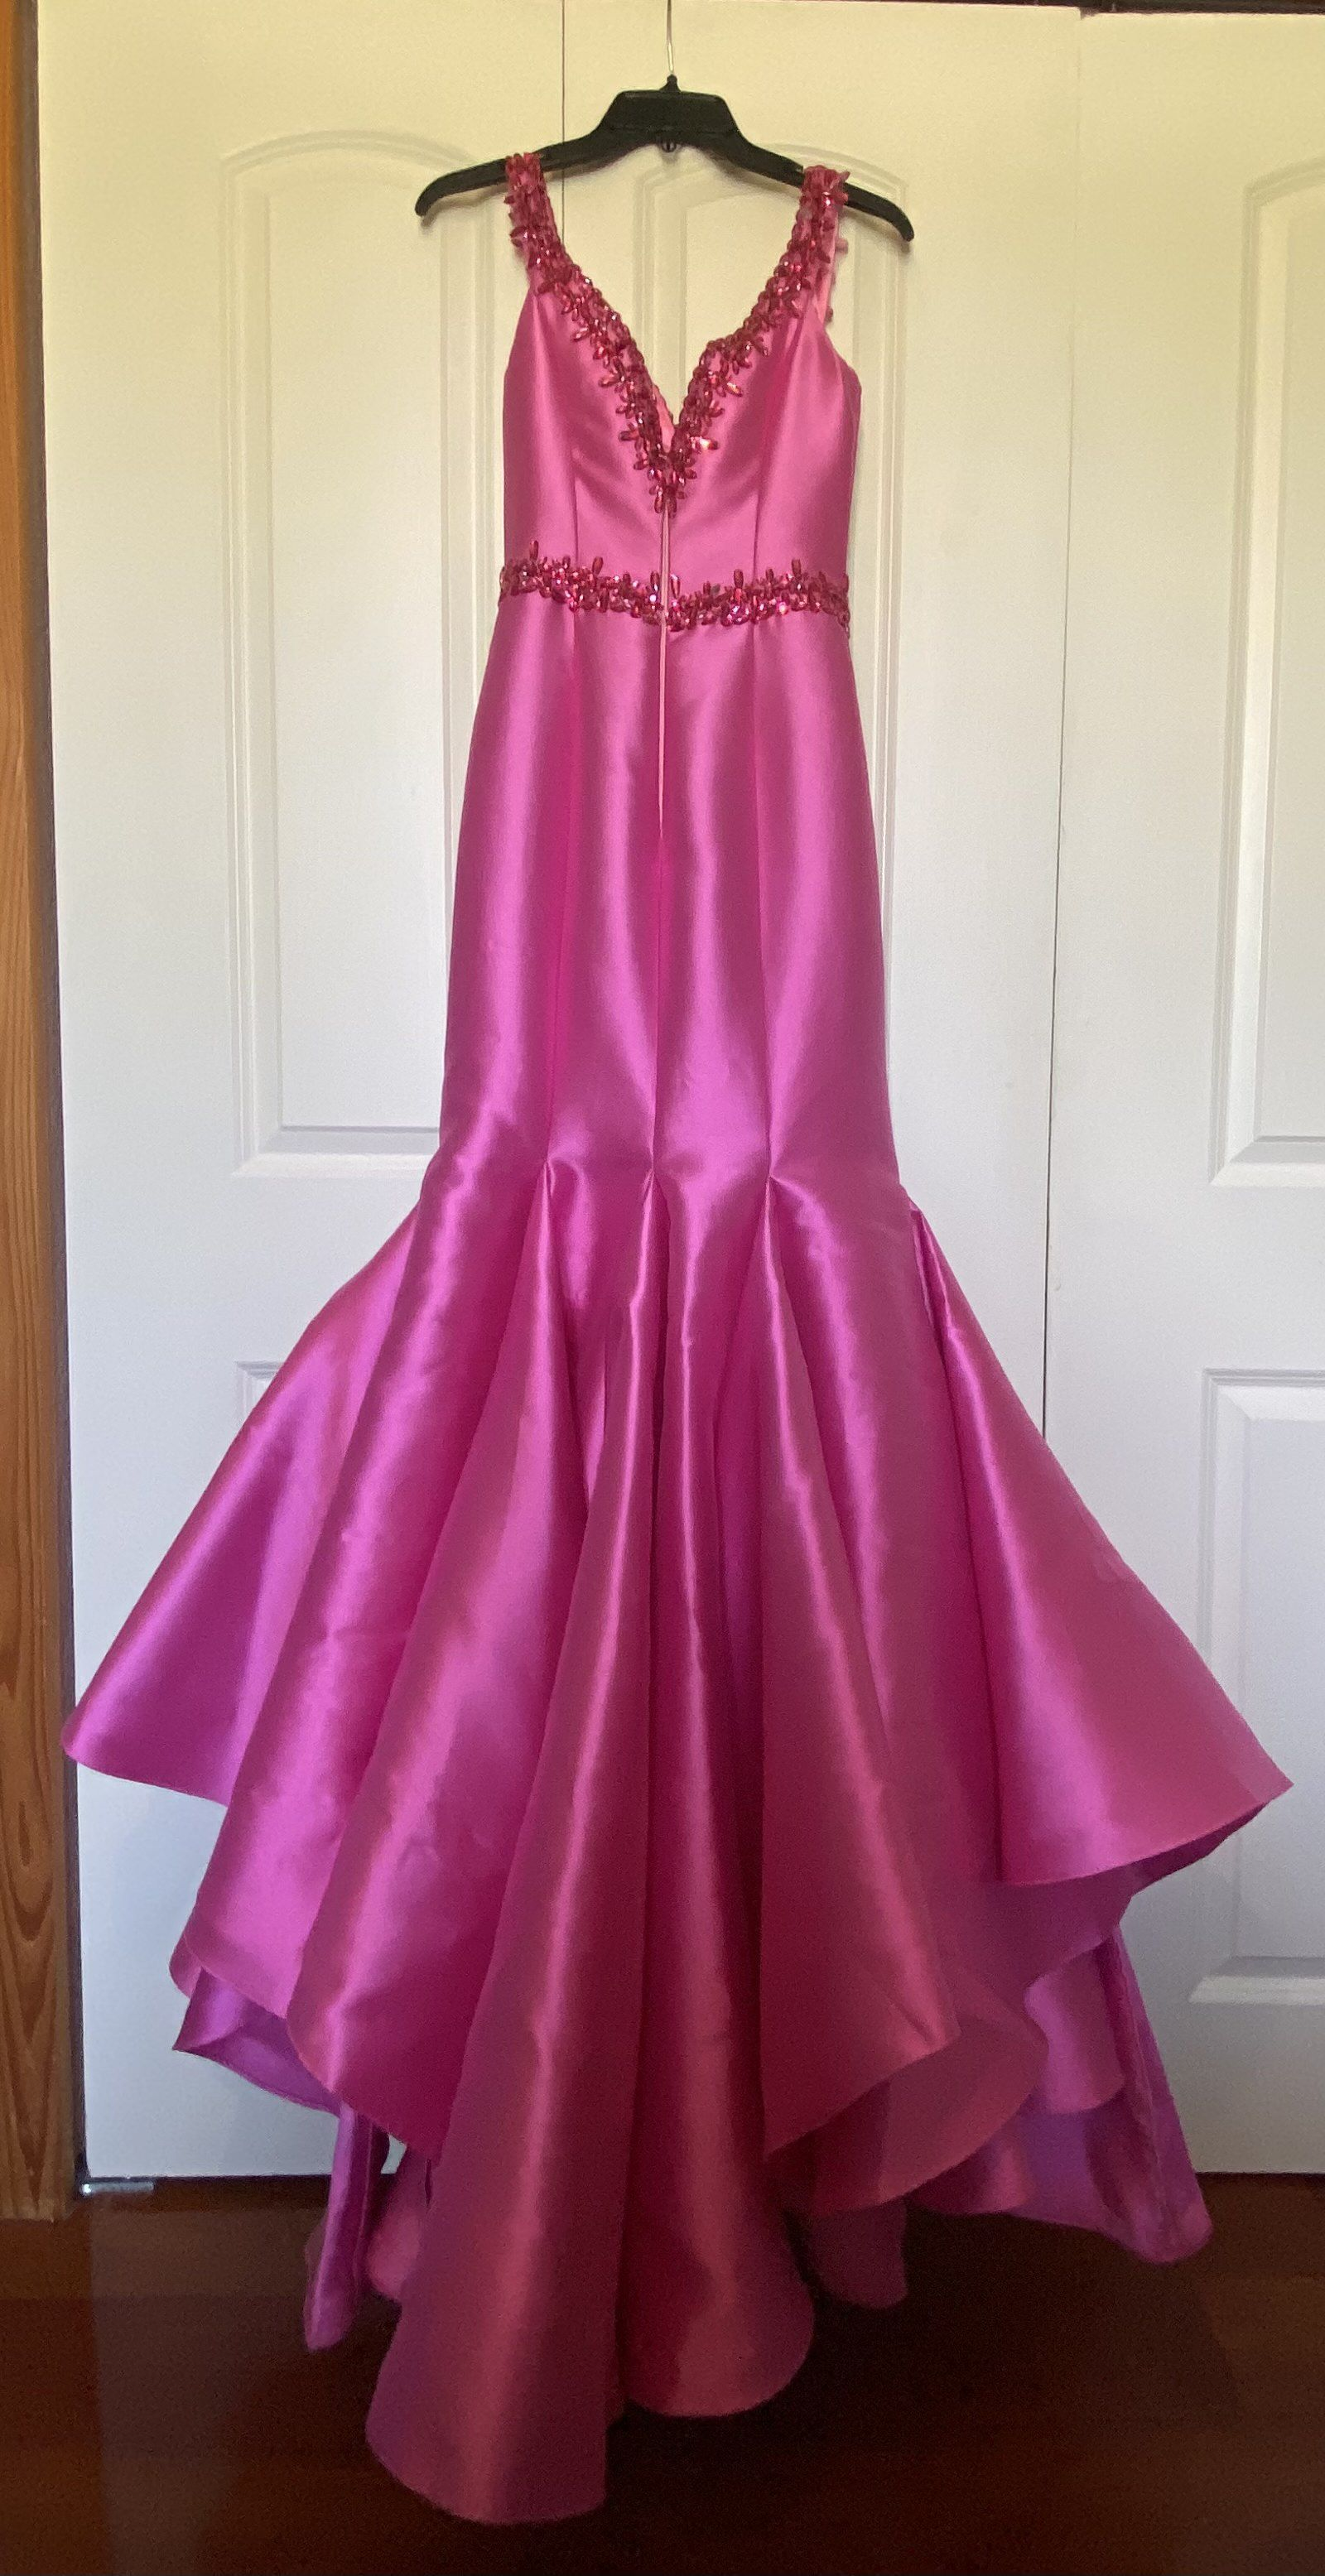 Ritzee Hot Pink Size 2 Pageant Mermaid Dress on Queenly